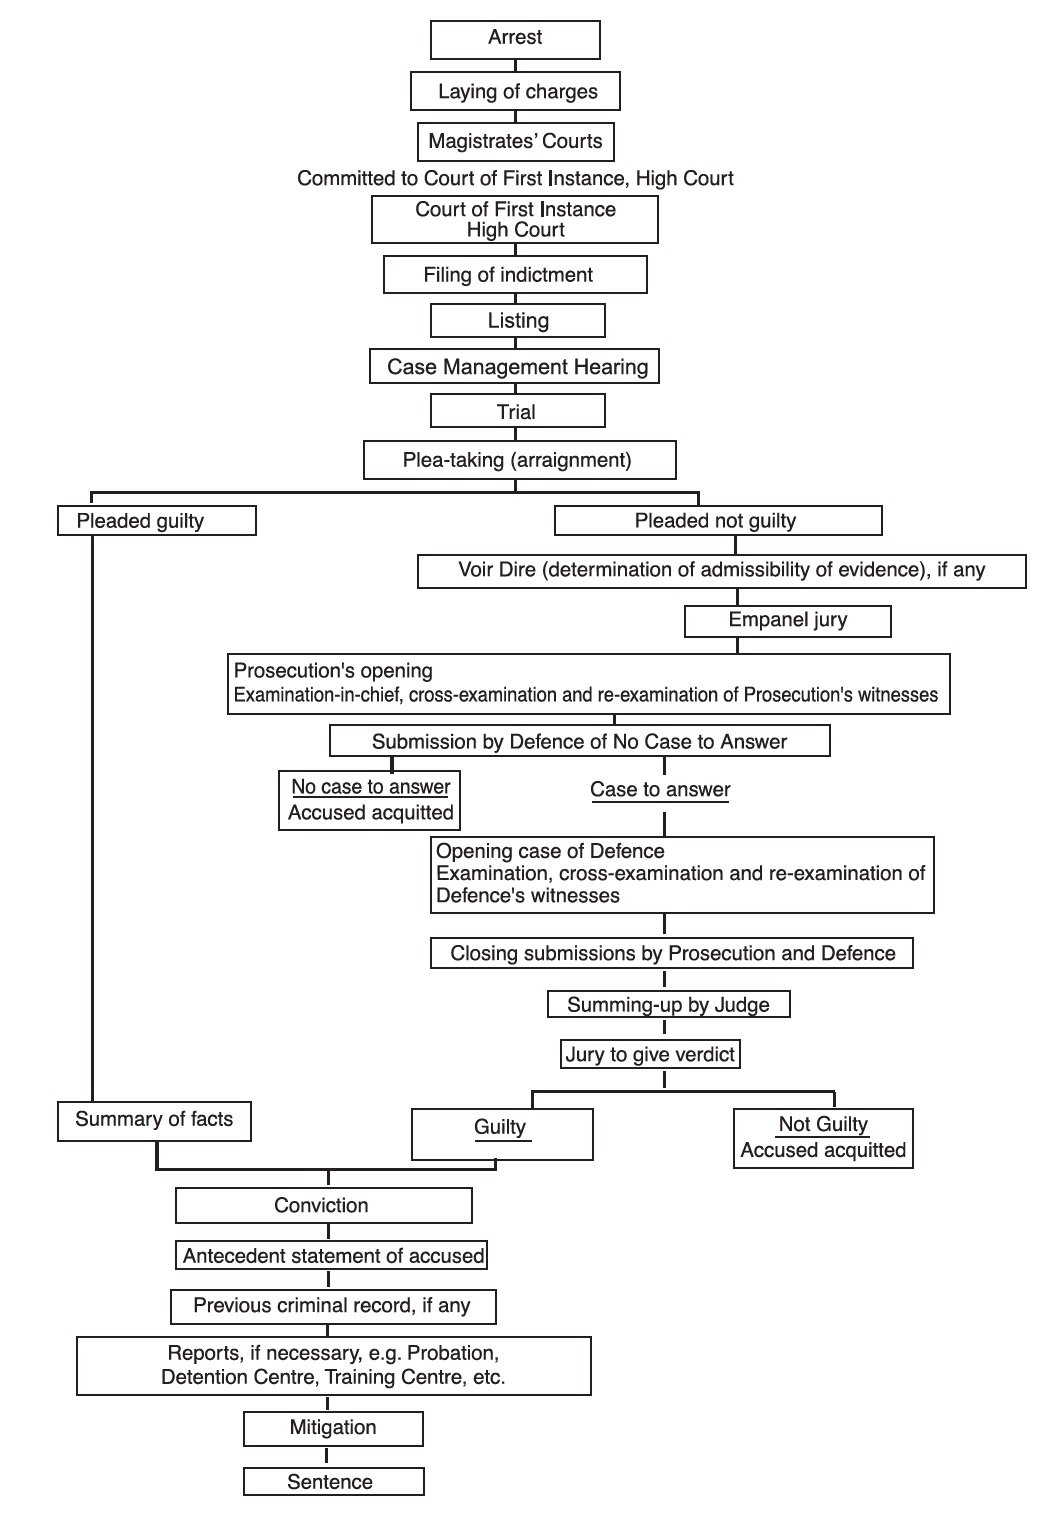 Civil Trial Procedure Flowchart